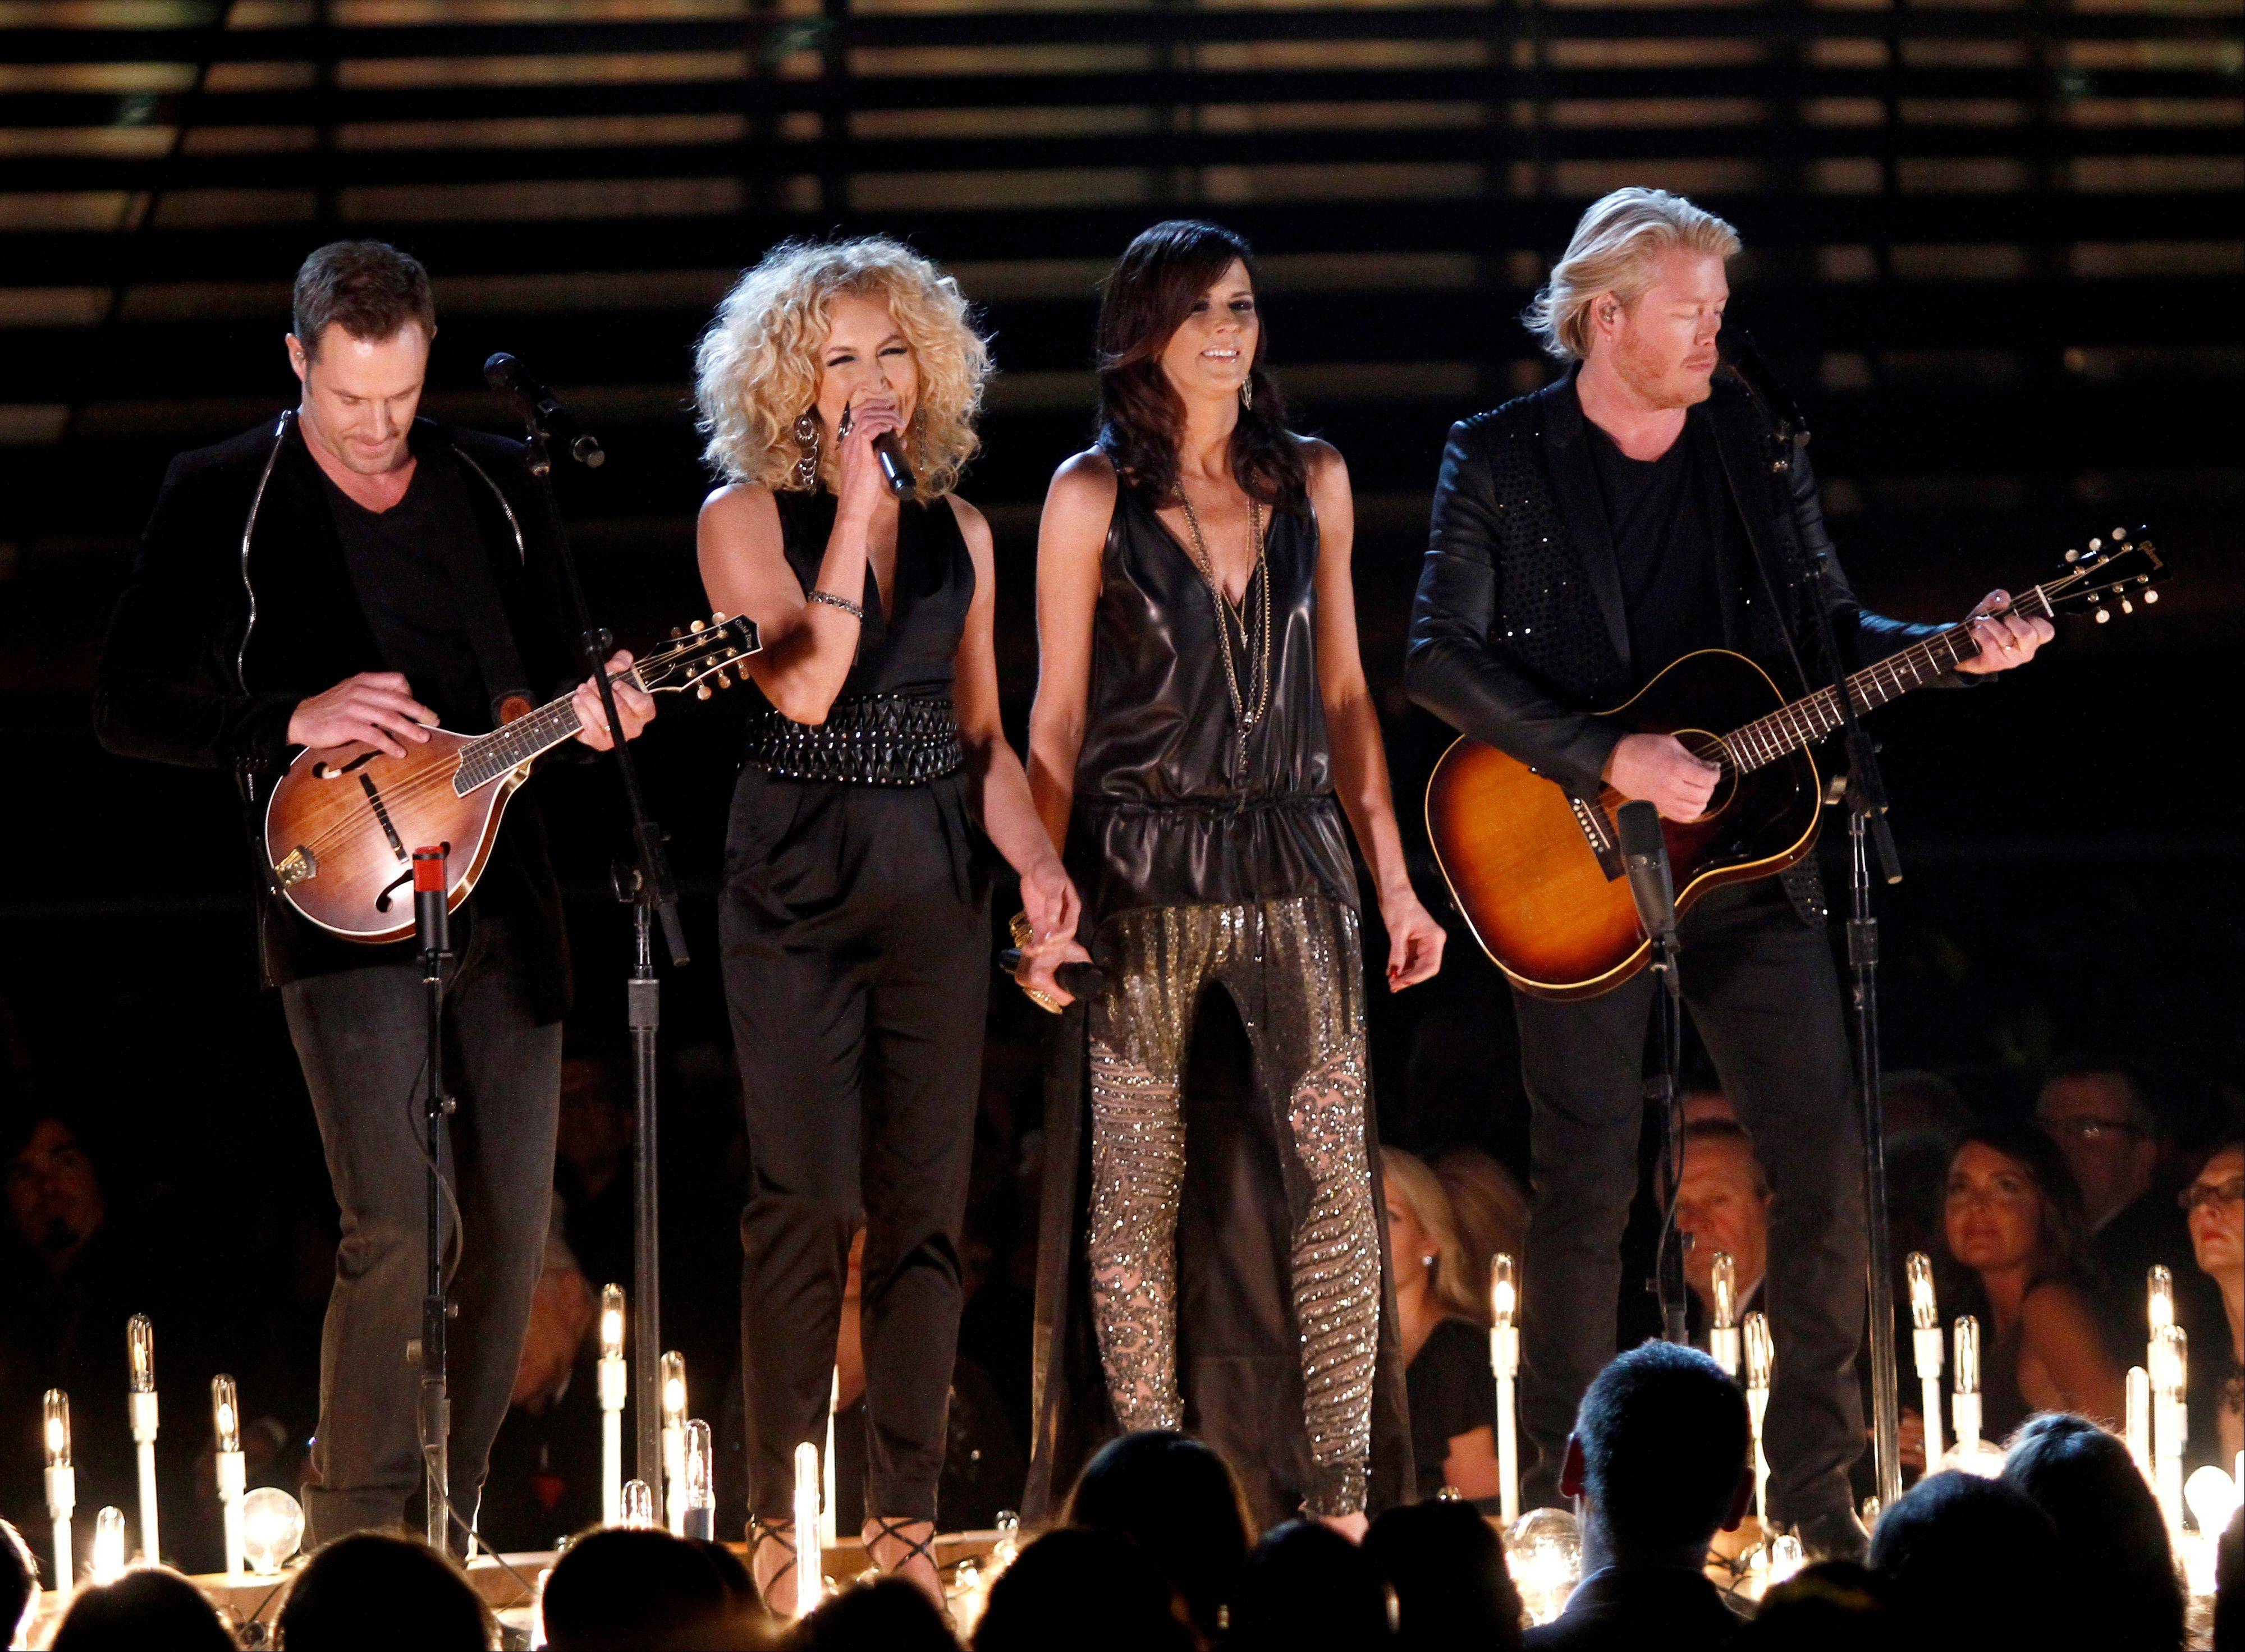 Little Big Town , from left, Jimi Westbrook , Kimberly Schlapman, Karen Fairchild, and Phillip Sweet perform